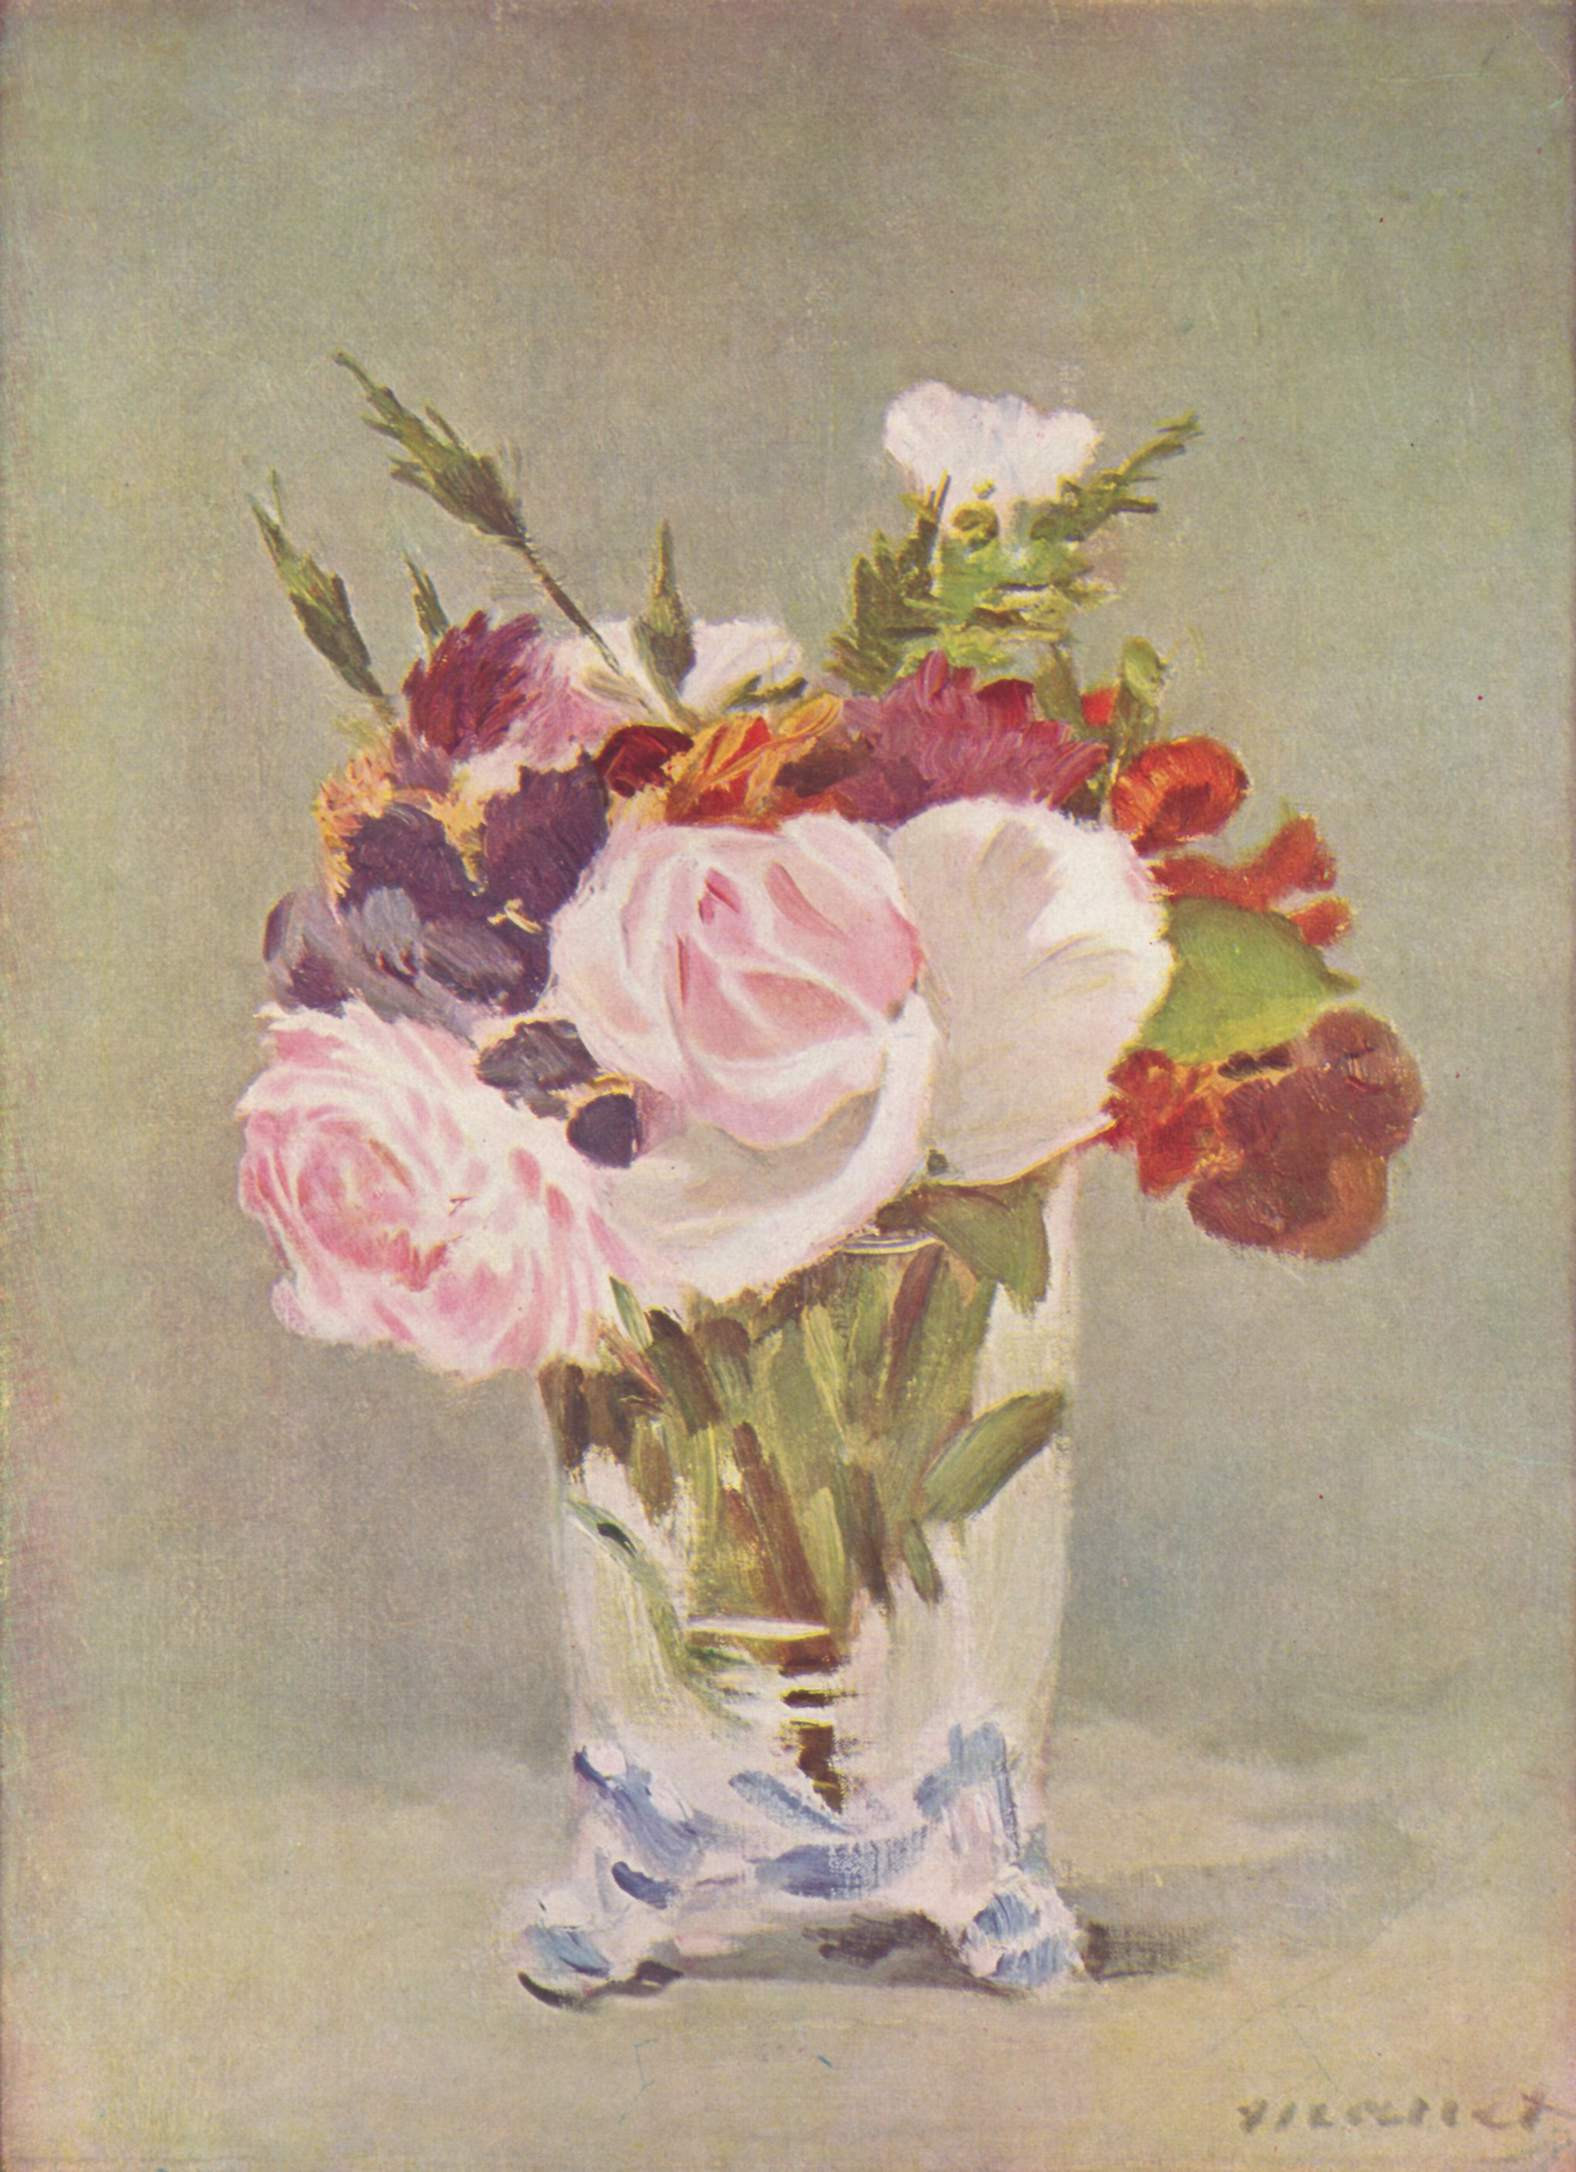 Isle Of Wight Glass Vase Of Eugene Manet On the isle Of Wight 1875 Berthe Morisot Wikiart org Regarding Still Life with Flowers 1880